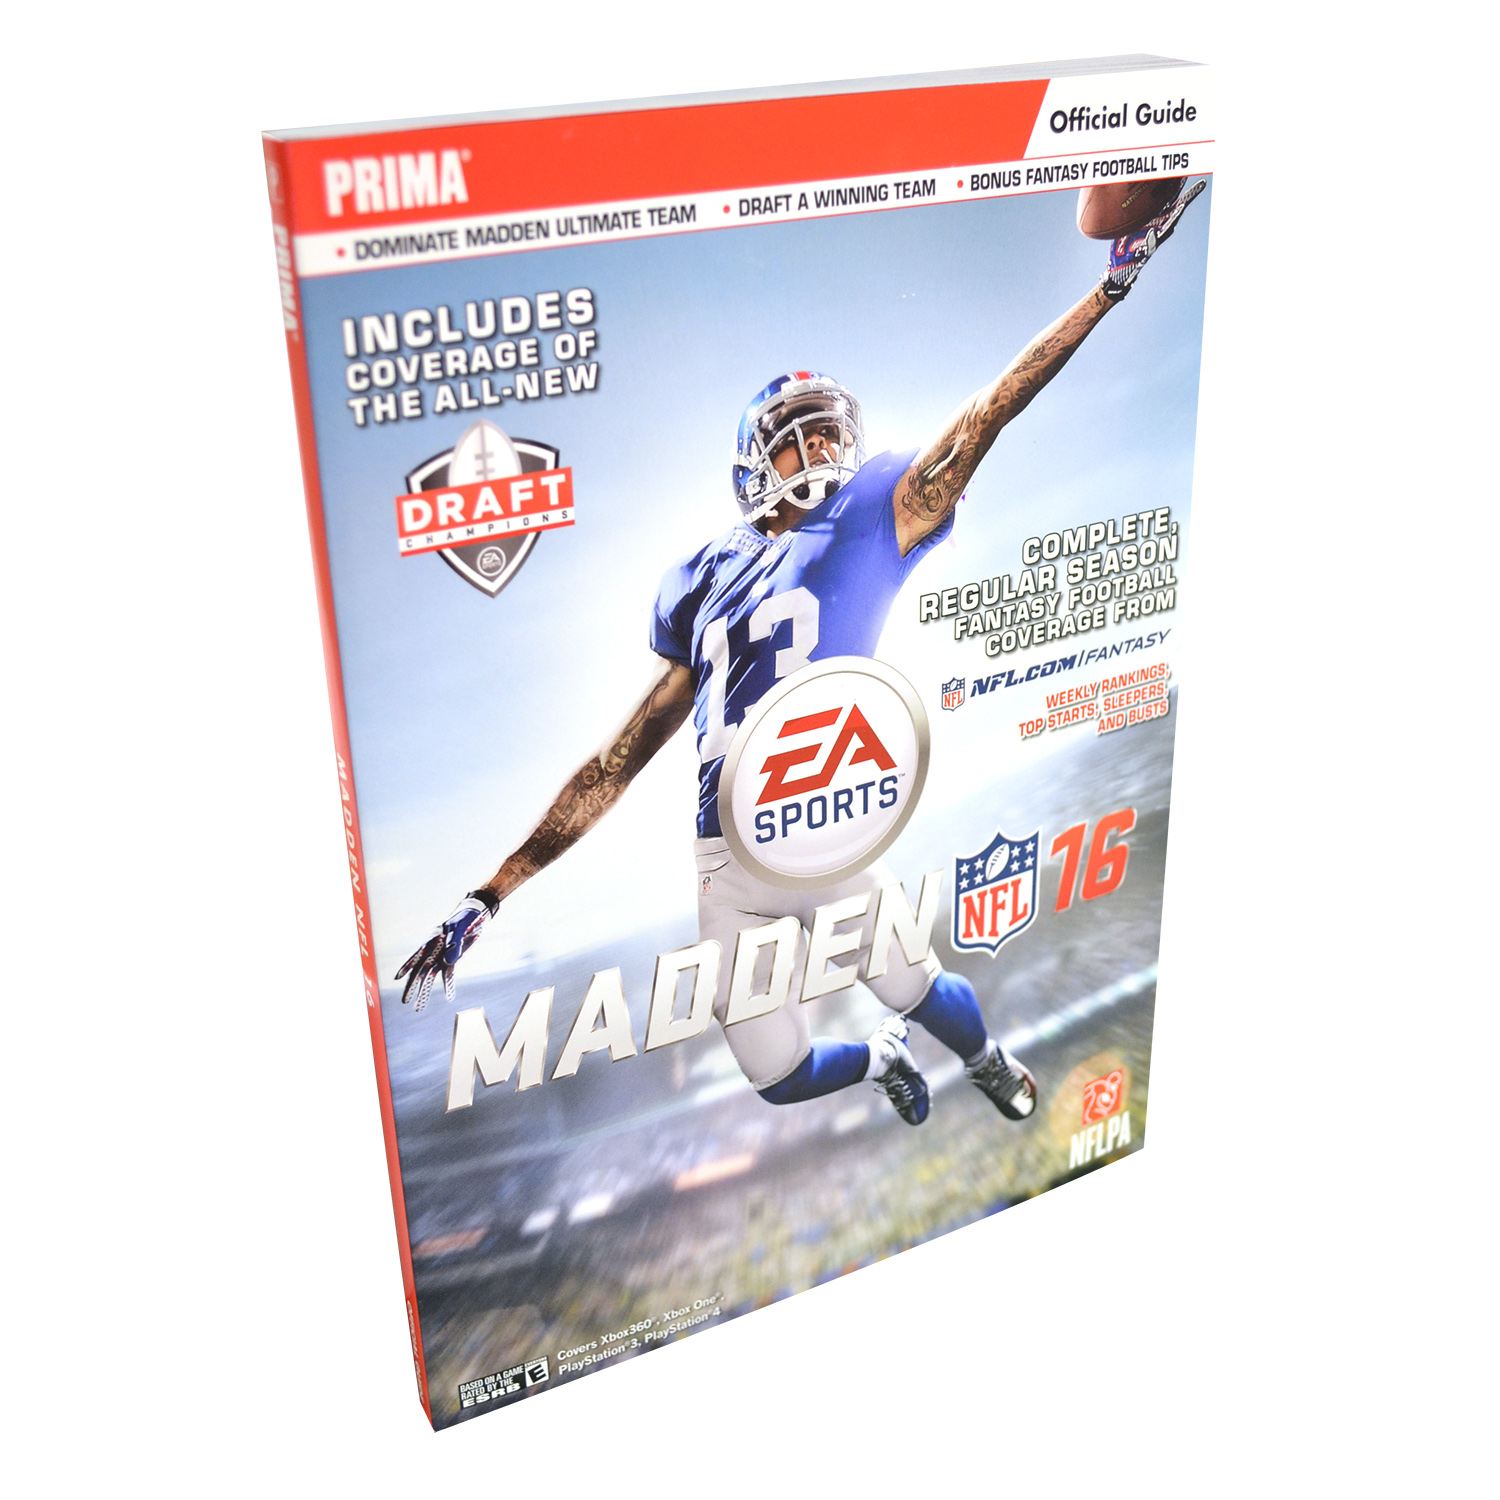 Prima Games Madden Nfl 16 Official Guide